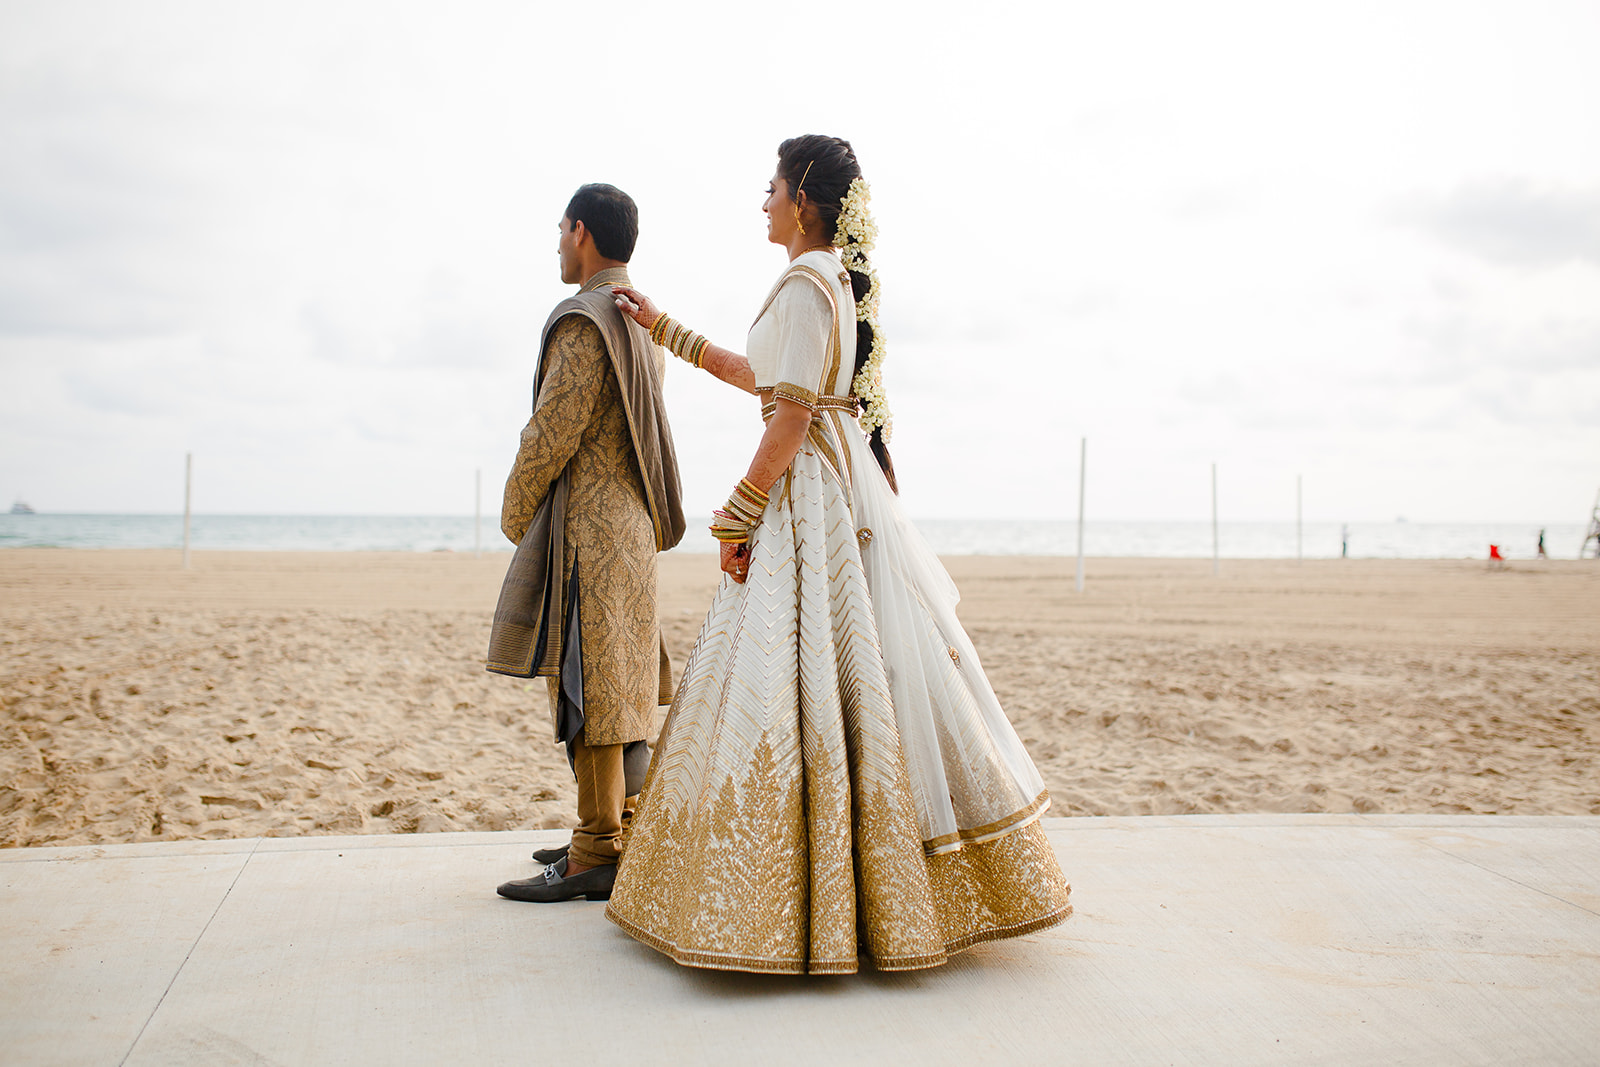 We planned the first look to happen right on the shores of Lake Michigan. A short walk from the Drake, Nandhini tapped Vamshi on the shoulder as they saw each other in their wedding day ensembles for the first time.